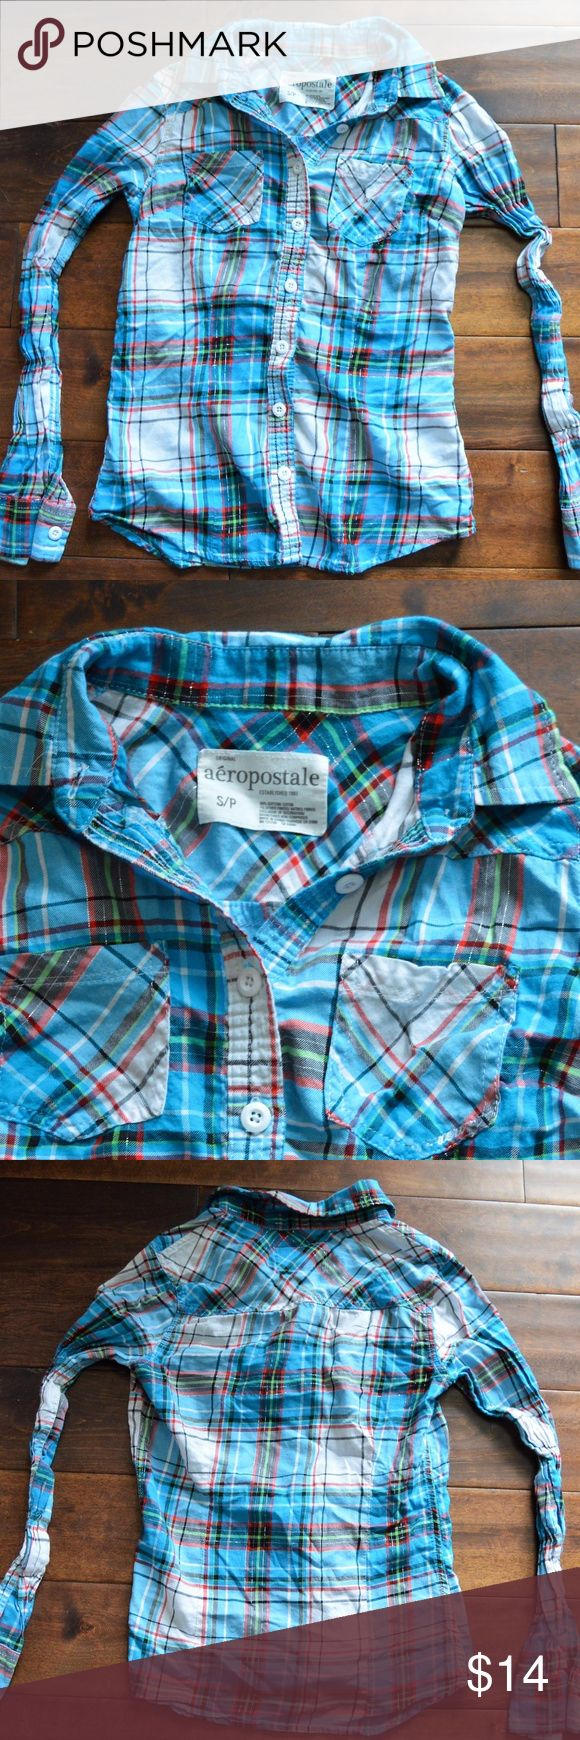 [aeropostale] blue plaid shirt Aeropostale blue plaid button down shirt. Size: Small Like new condition! Aeropostale Tops Button Down Shirts